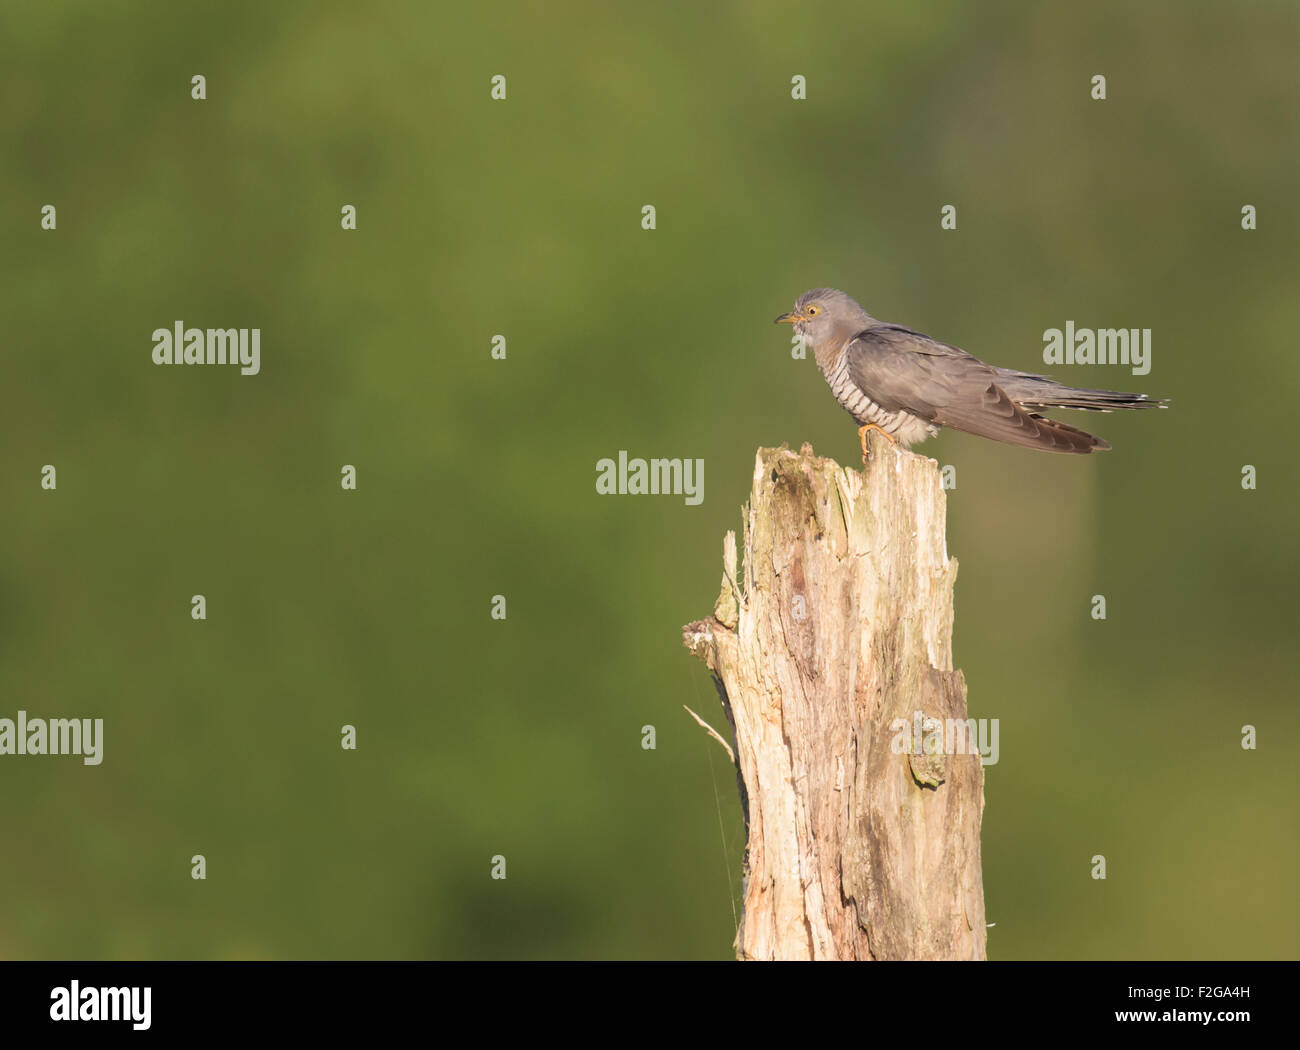 Cuckoo (Cuculus canorus) perched on tree stump - Stock Image